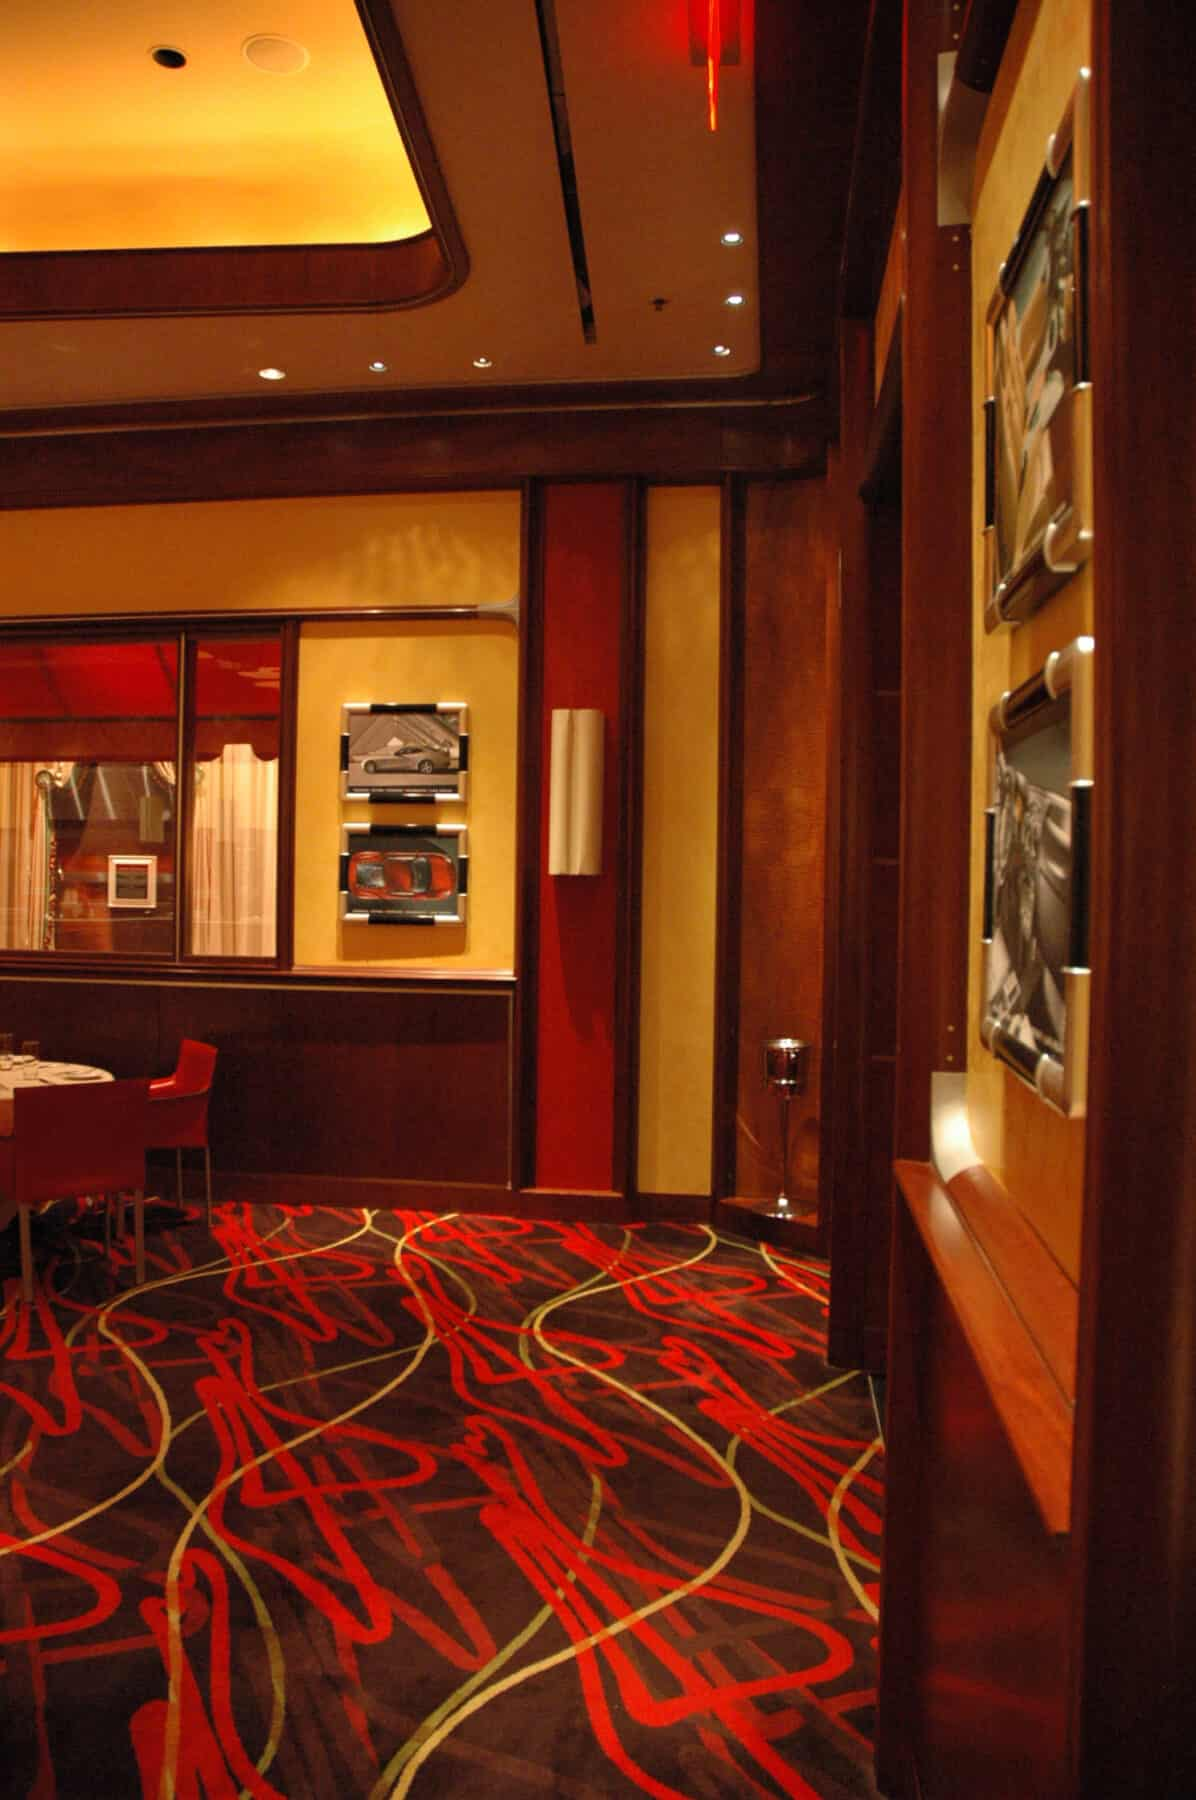 Custom Flooring and Wall Finishes for Restaurant at Wynn Hotel Remodel by Commercial Builder & General Contractor Structural Enterprises